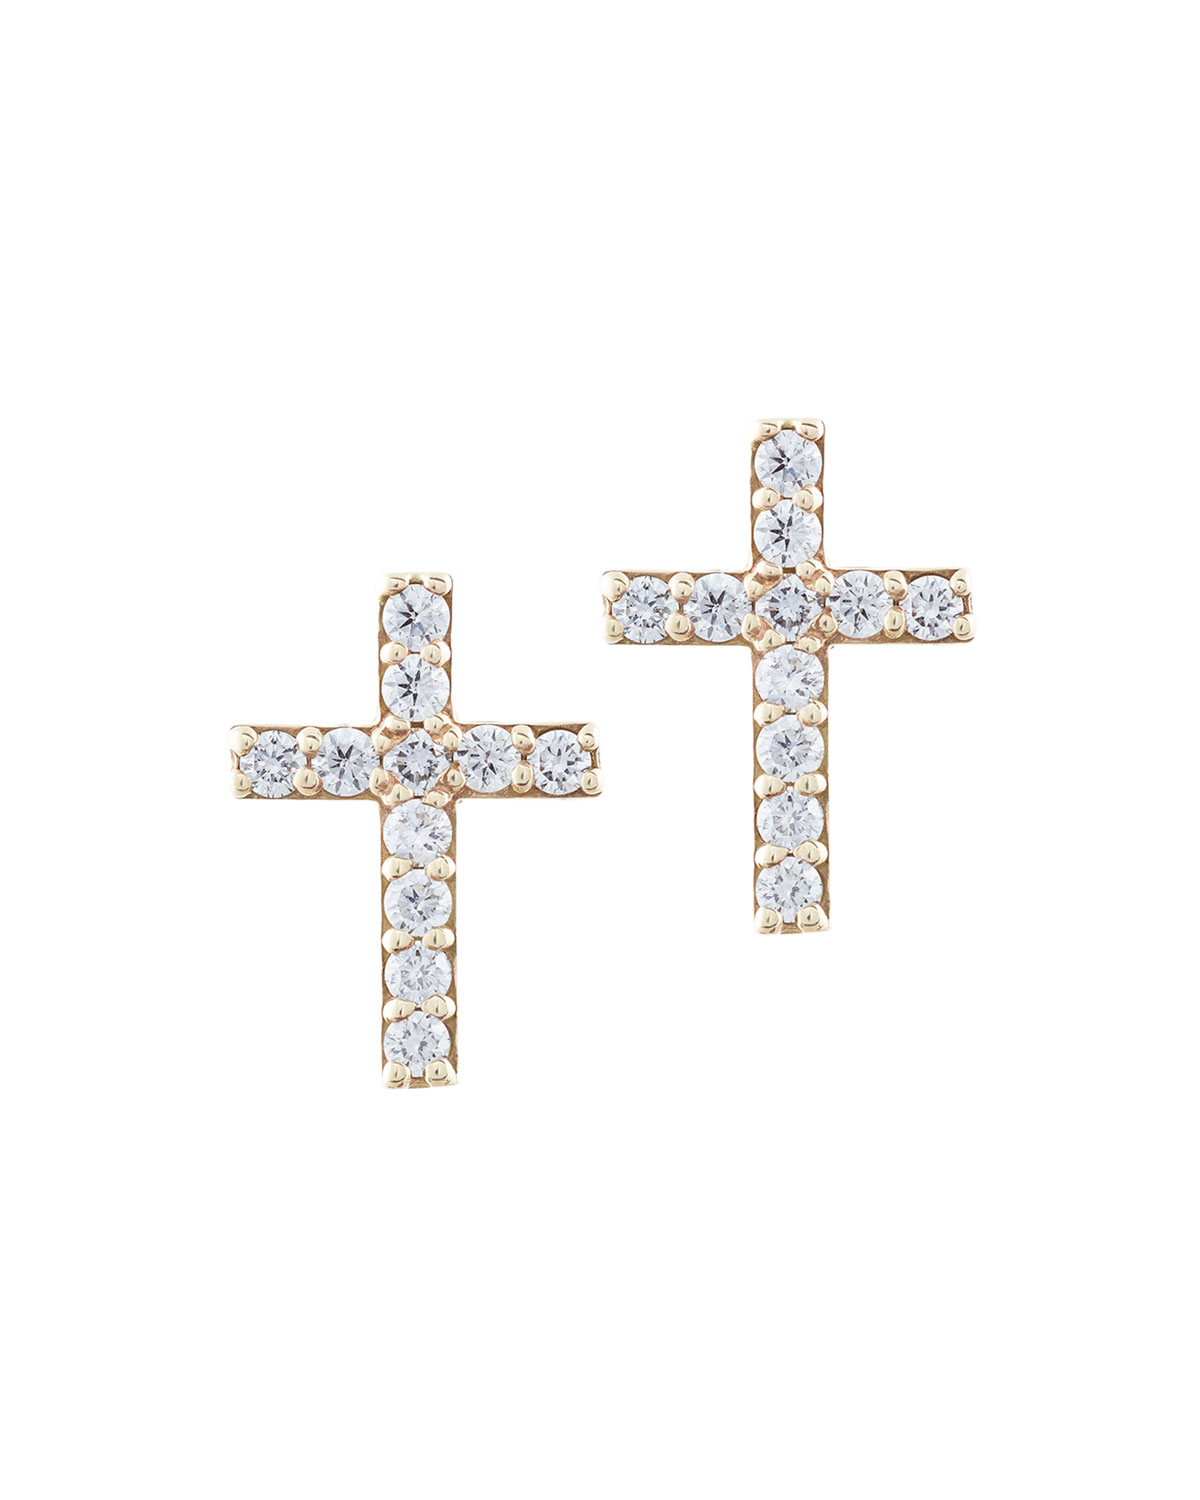 Diamond Cross Stud Earrings In 14k Gold